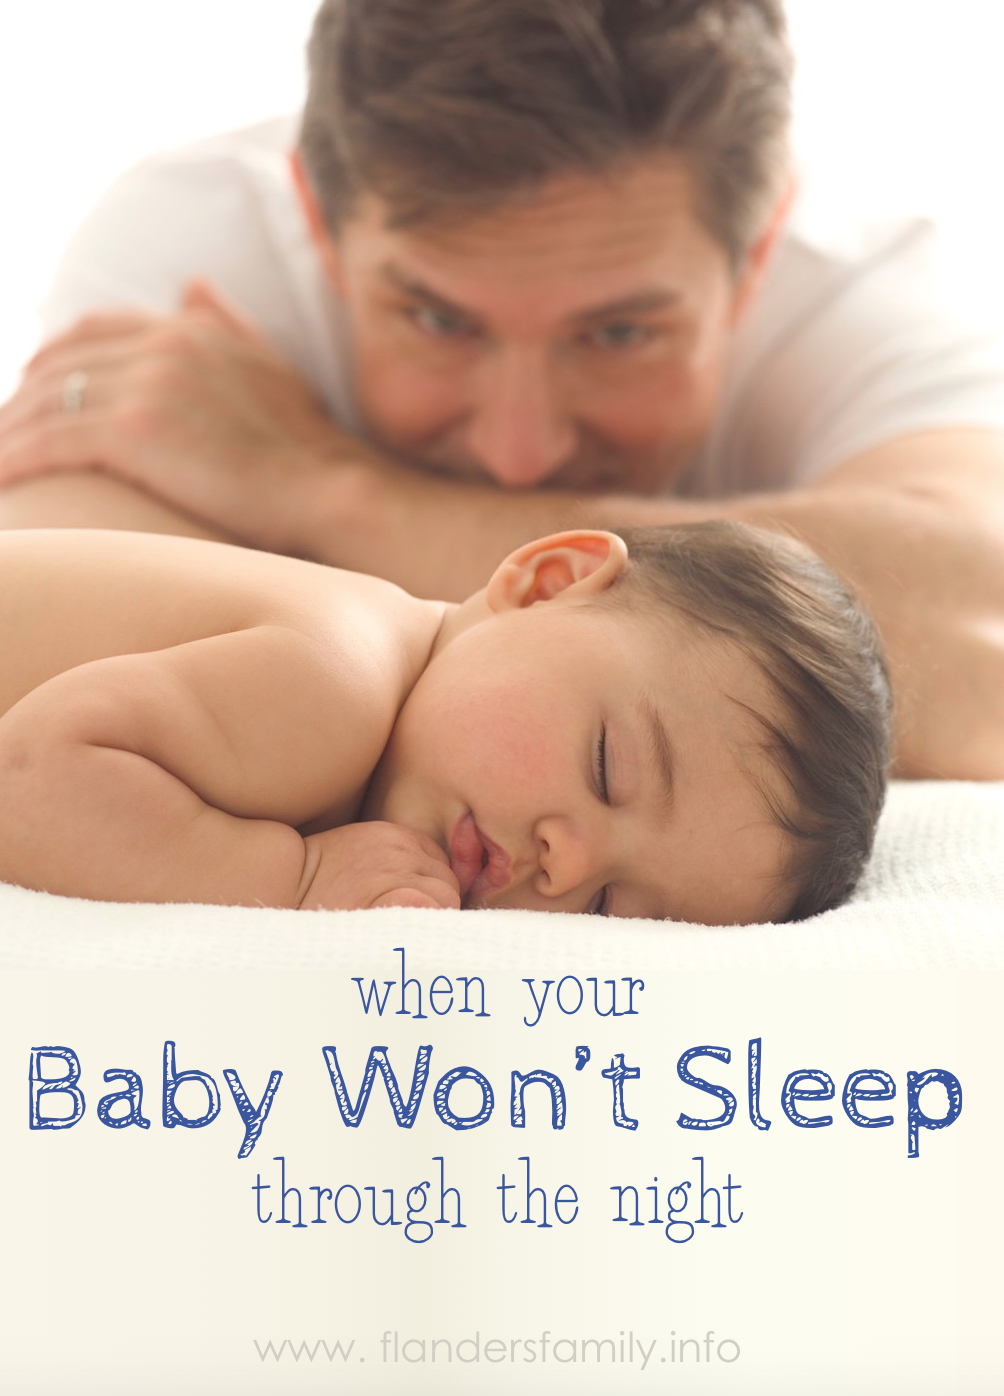 Q&A: How Can I Get My Baby to Sleep thru the Night?